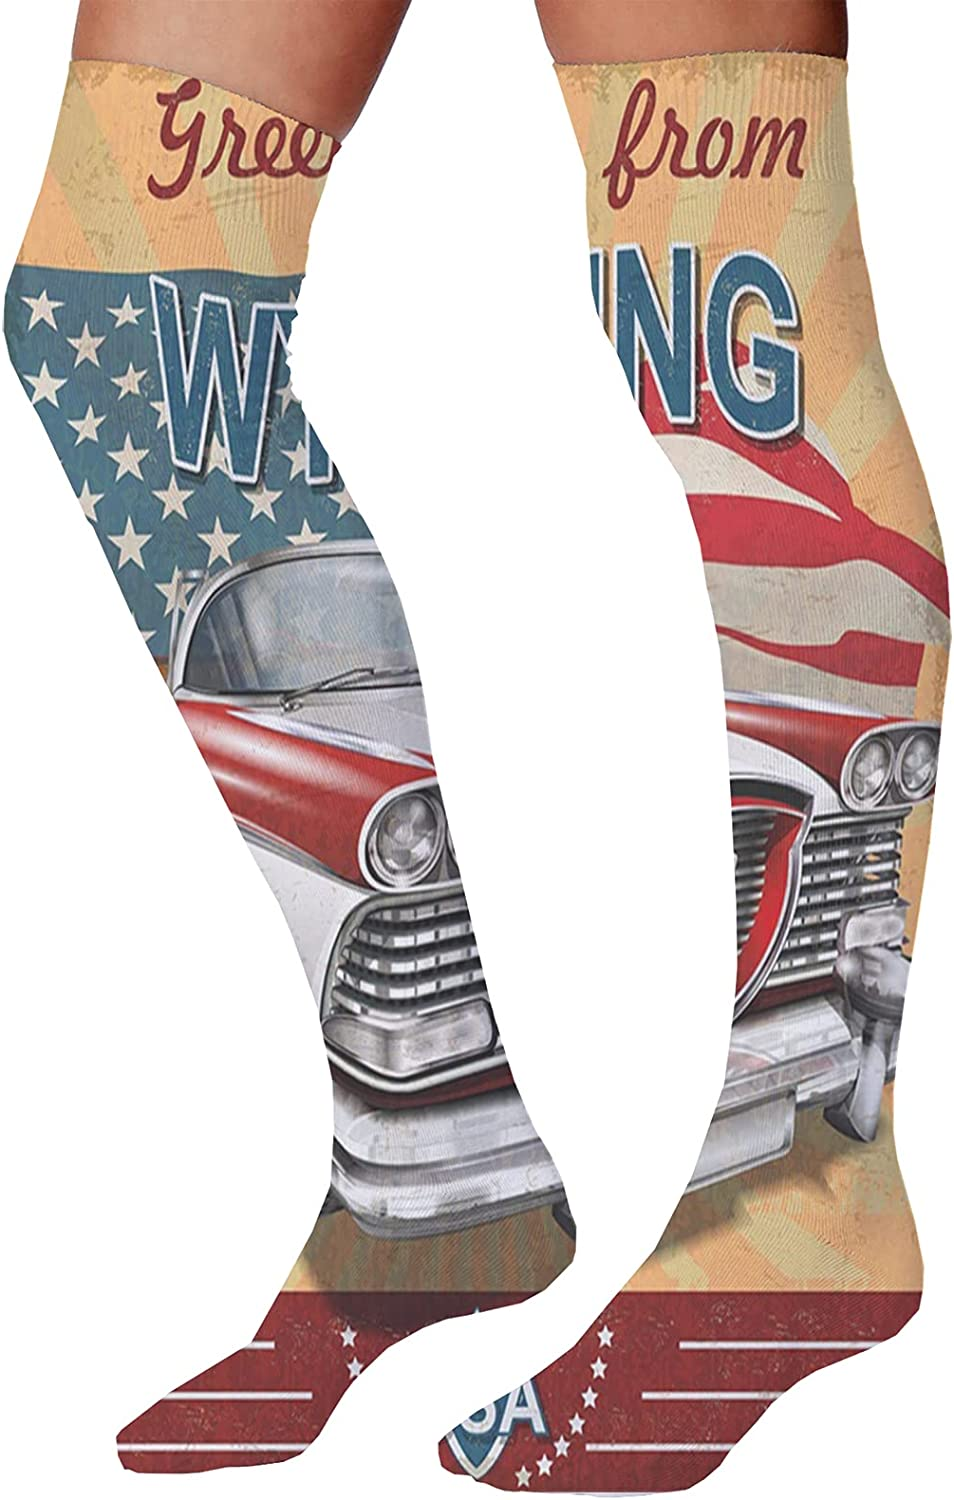 Unisex Dress Cool Colorful Fancy Novelty Funny Casual Combed Cotton Crew SocksRetro Design Illustration of Old Vintage Car and Greetings from Lettering USA